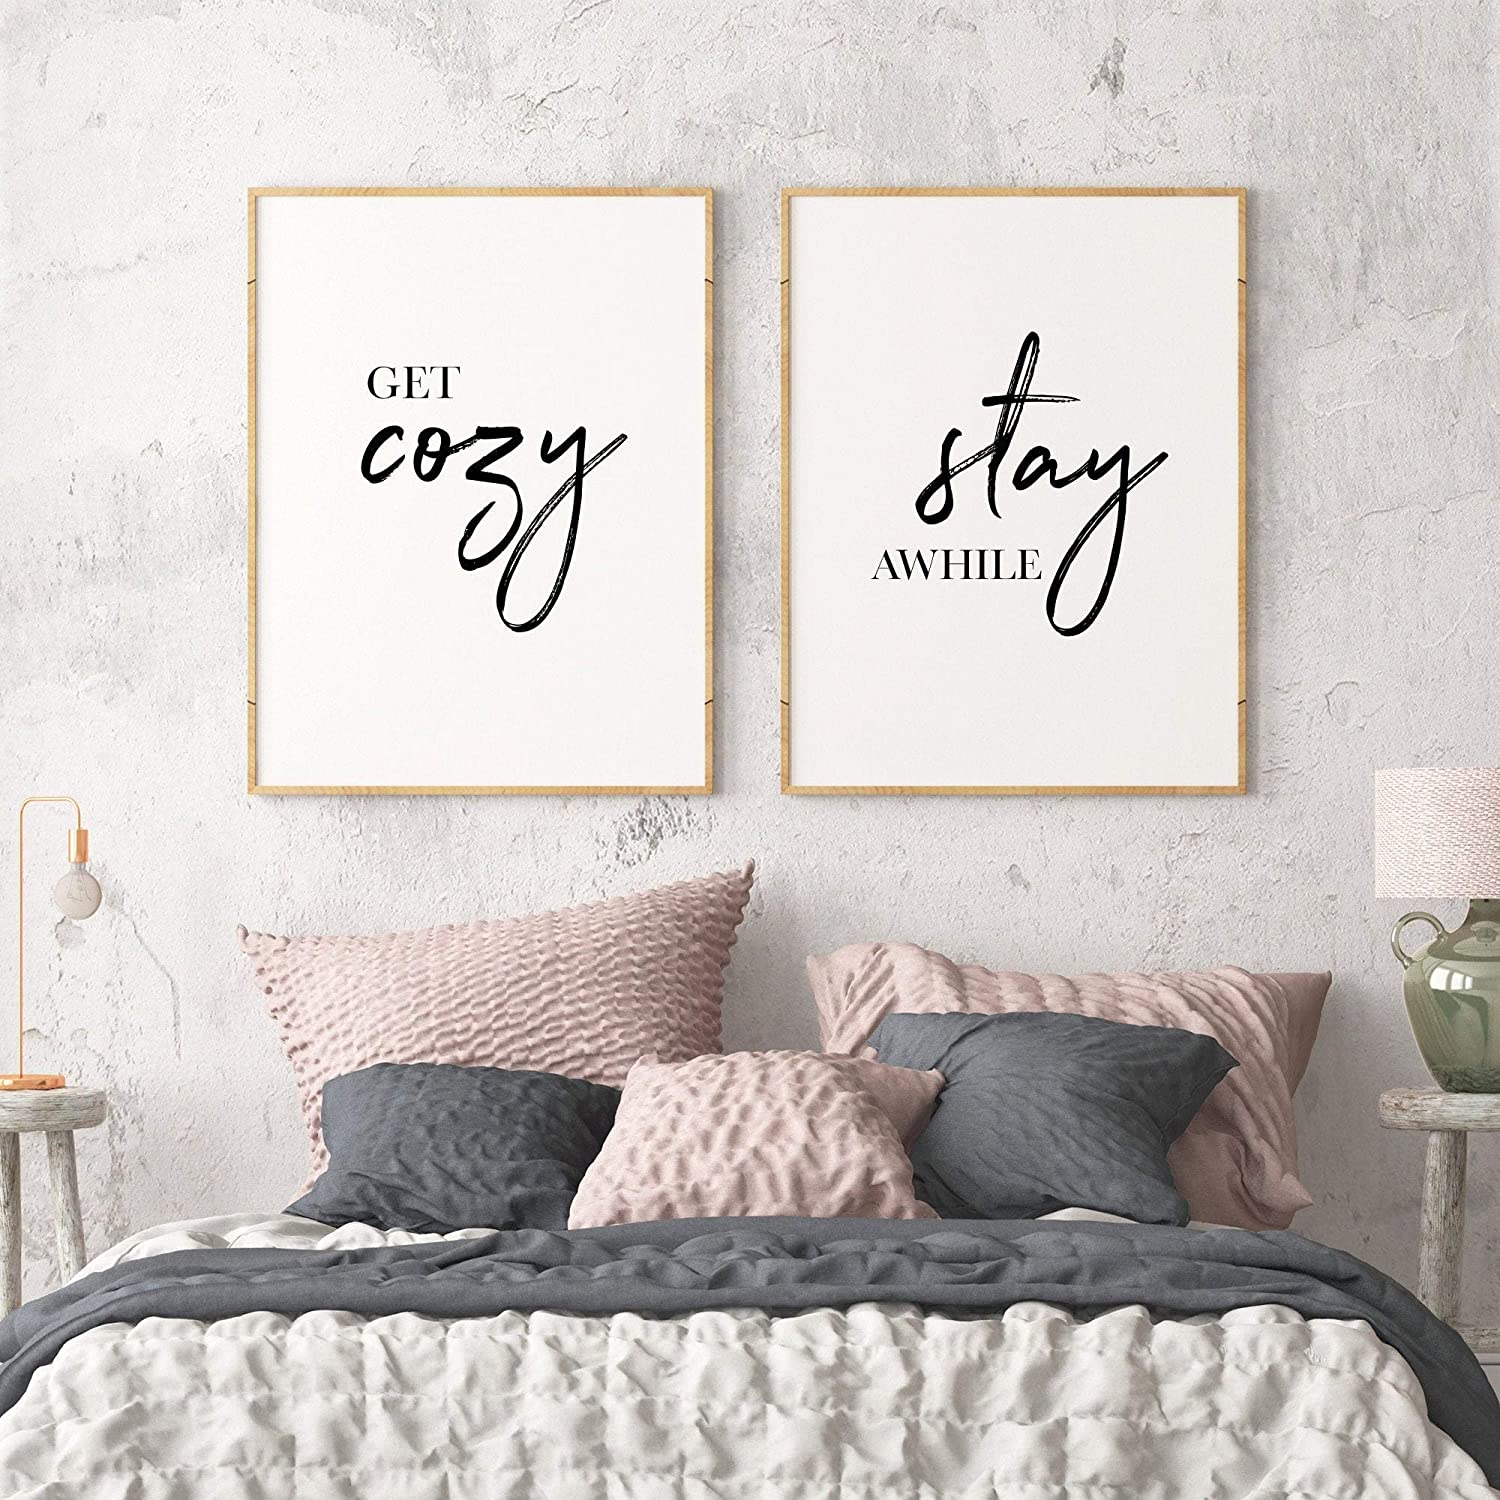 Amazon Com Wood Framed Sign 8x12 Wooden Prints Printable Get Cozy Stay Awhile Printable Art Set Of 2 Wall Art Guest Room Decor Inspirational Quote Print Stay Awhile Sign Wood Signs For Home